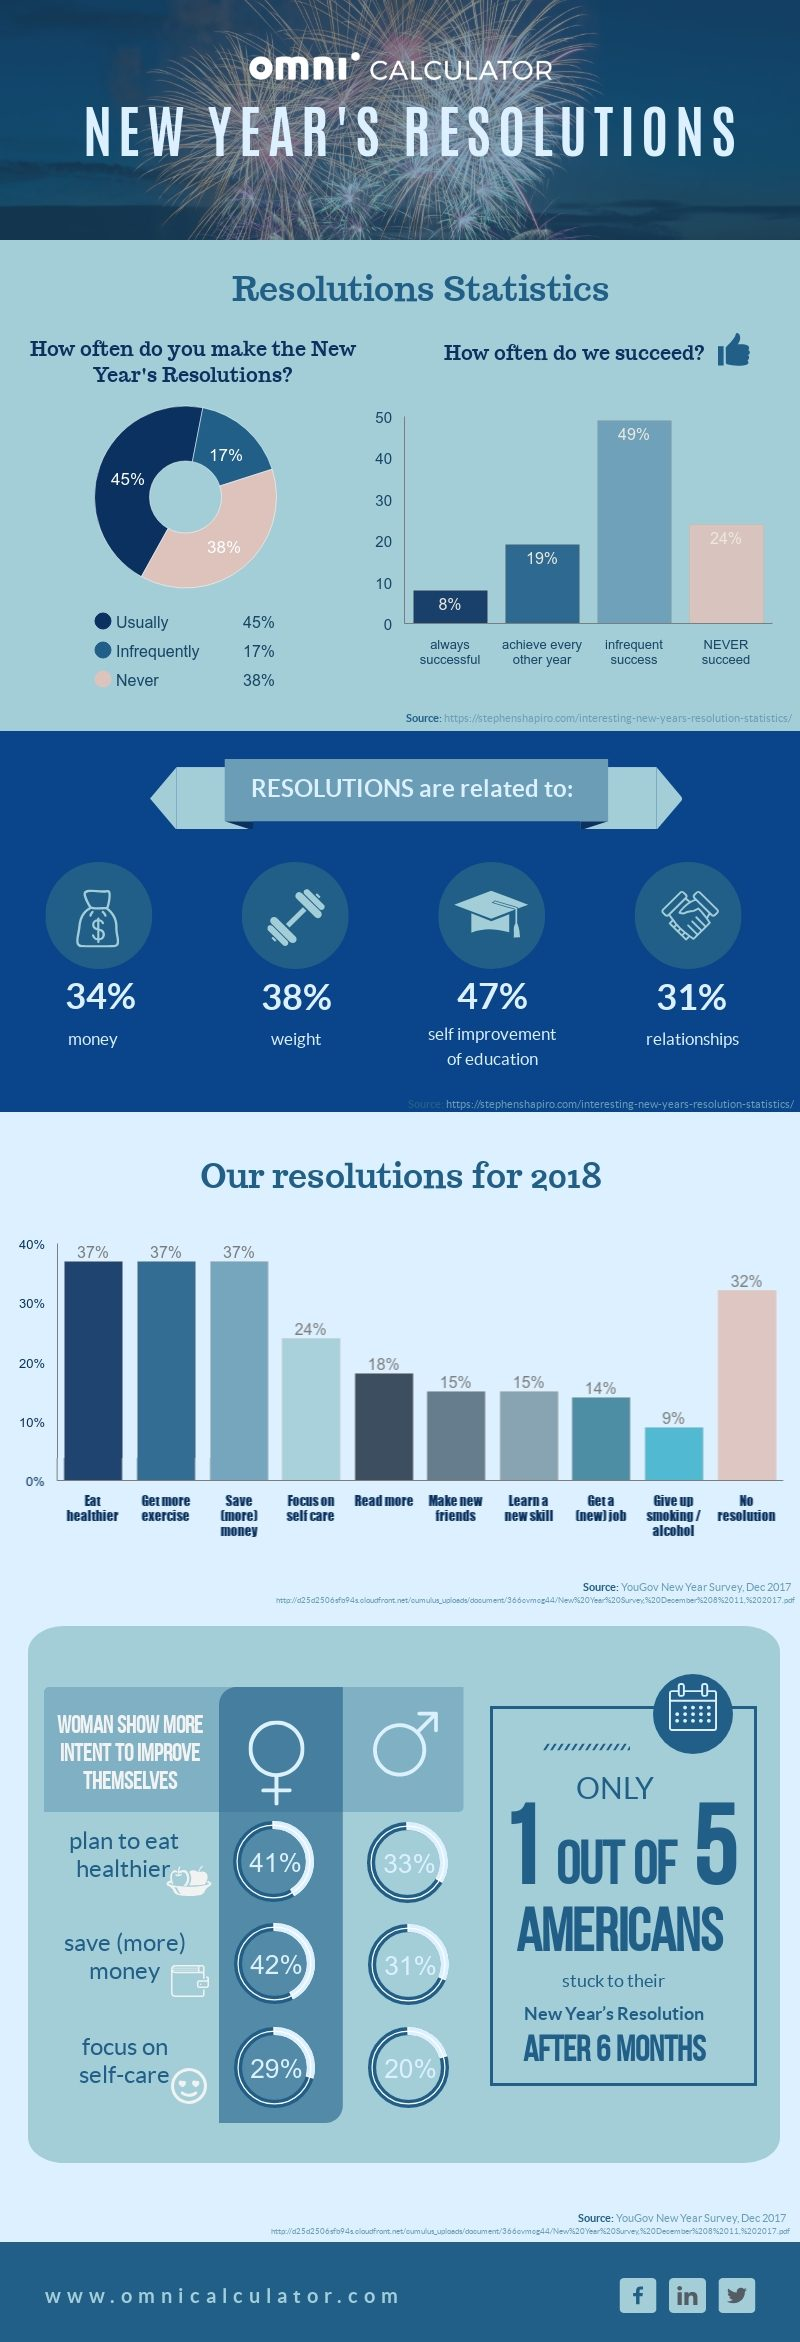 New Year's Resolutions statistics by Omni